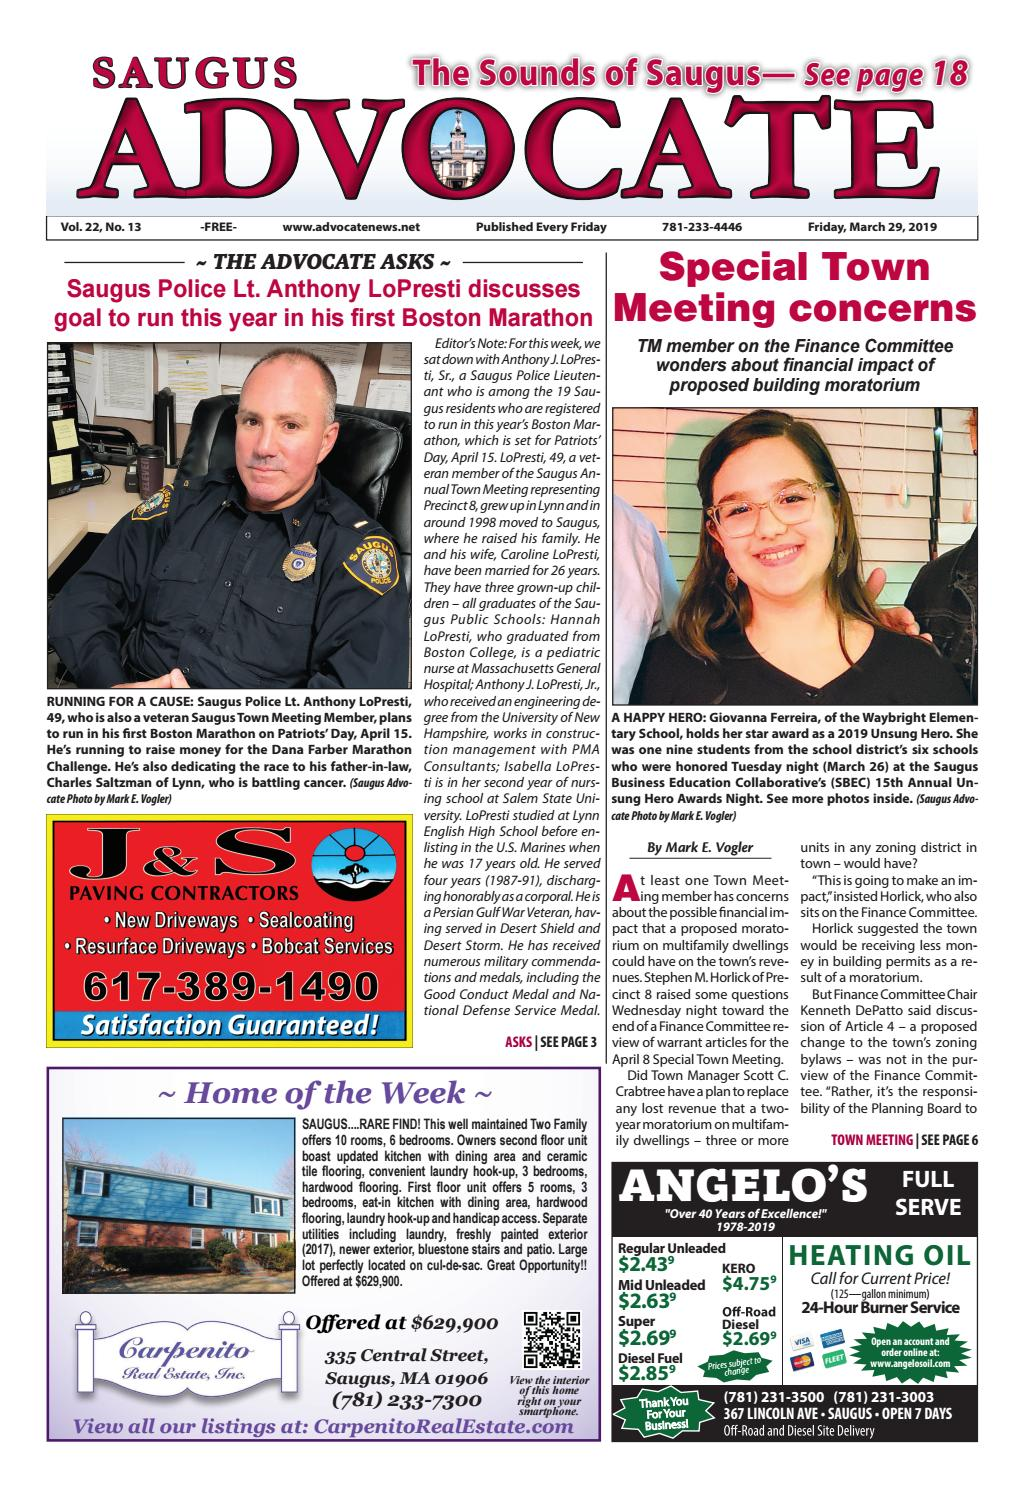 THE SAUGUS ADVOCATE - Friday, March 29, 2019 by Mike Kurov